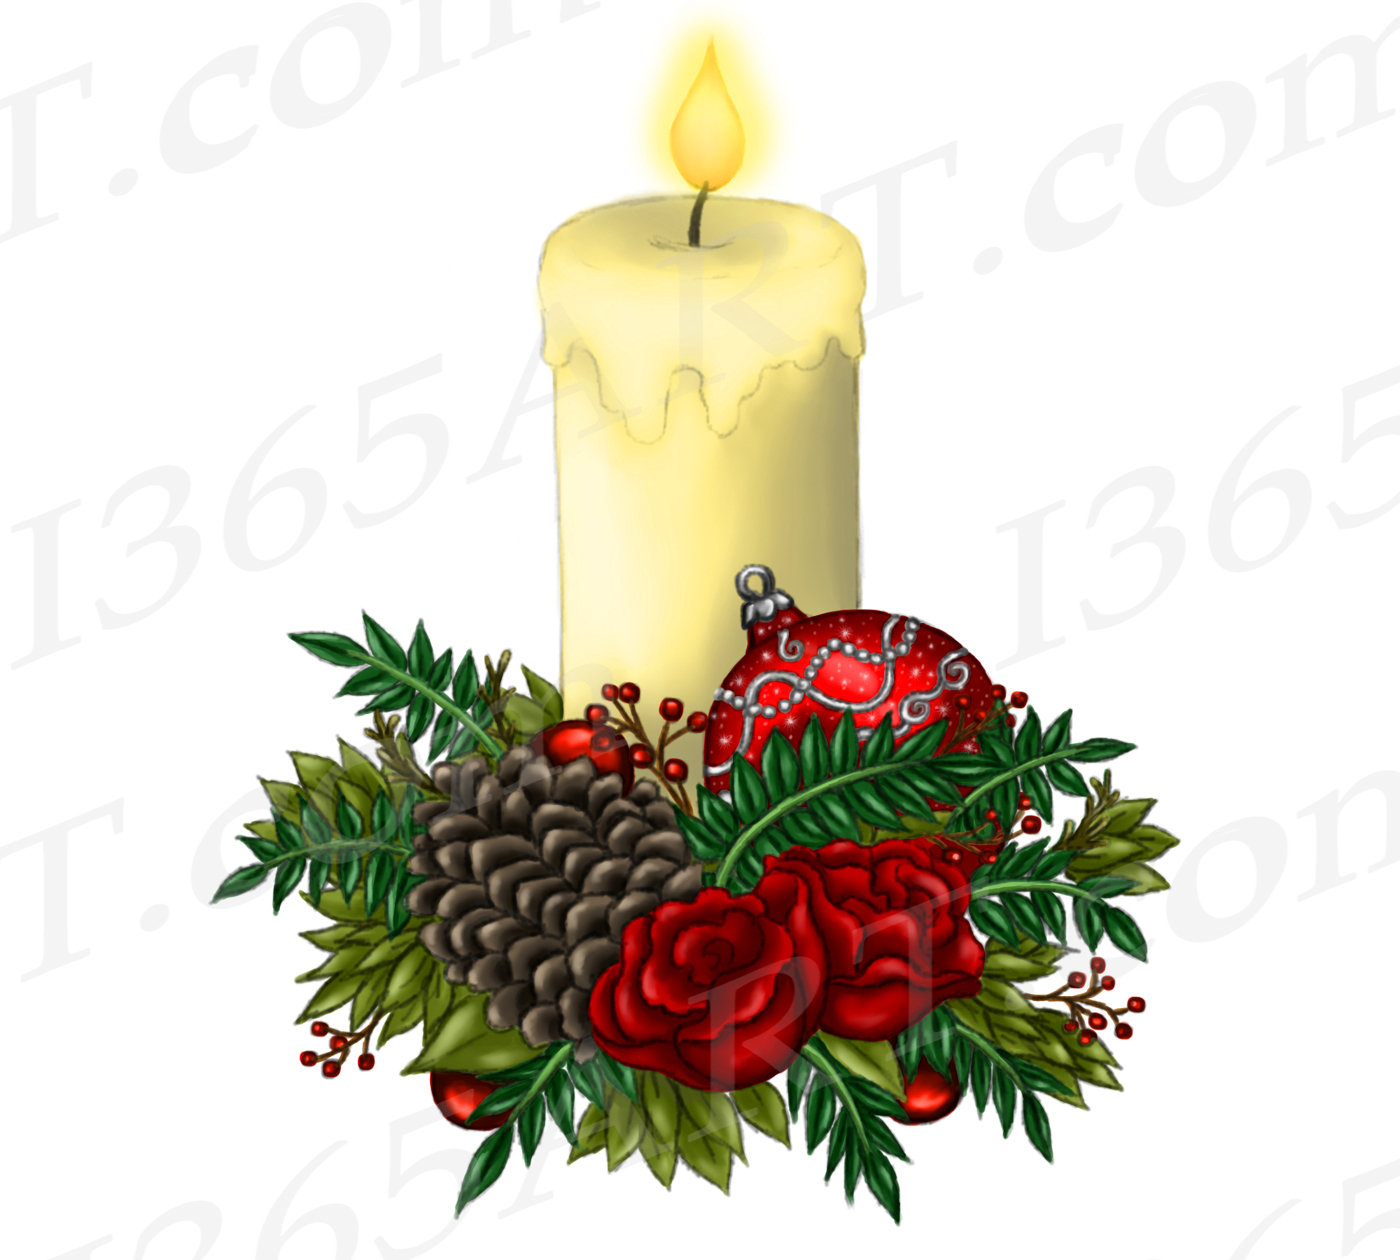 Png Christmas.Christmas Candle Clipart Watercolor Candle Png Graphic